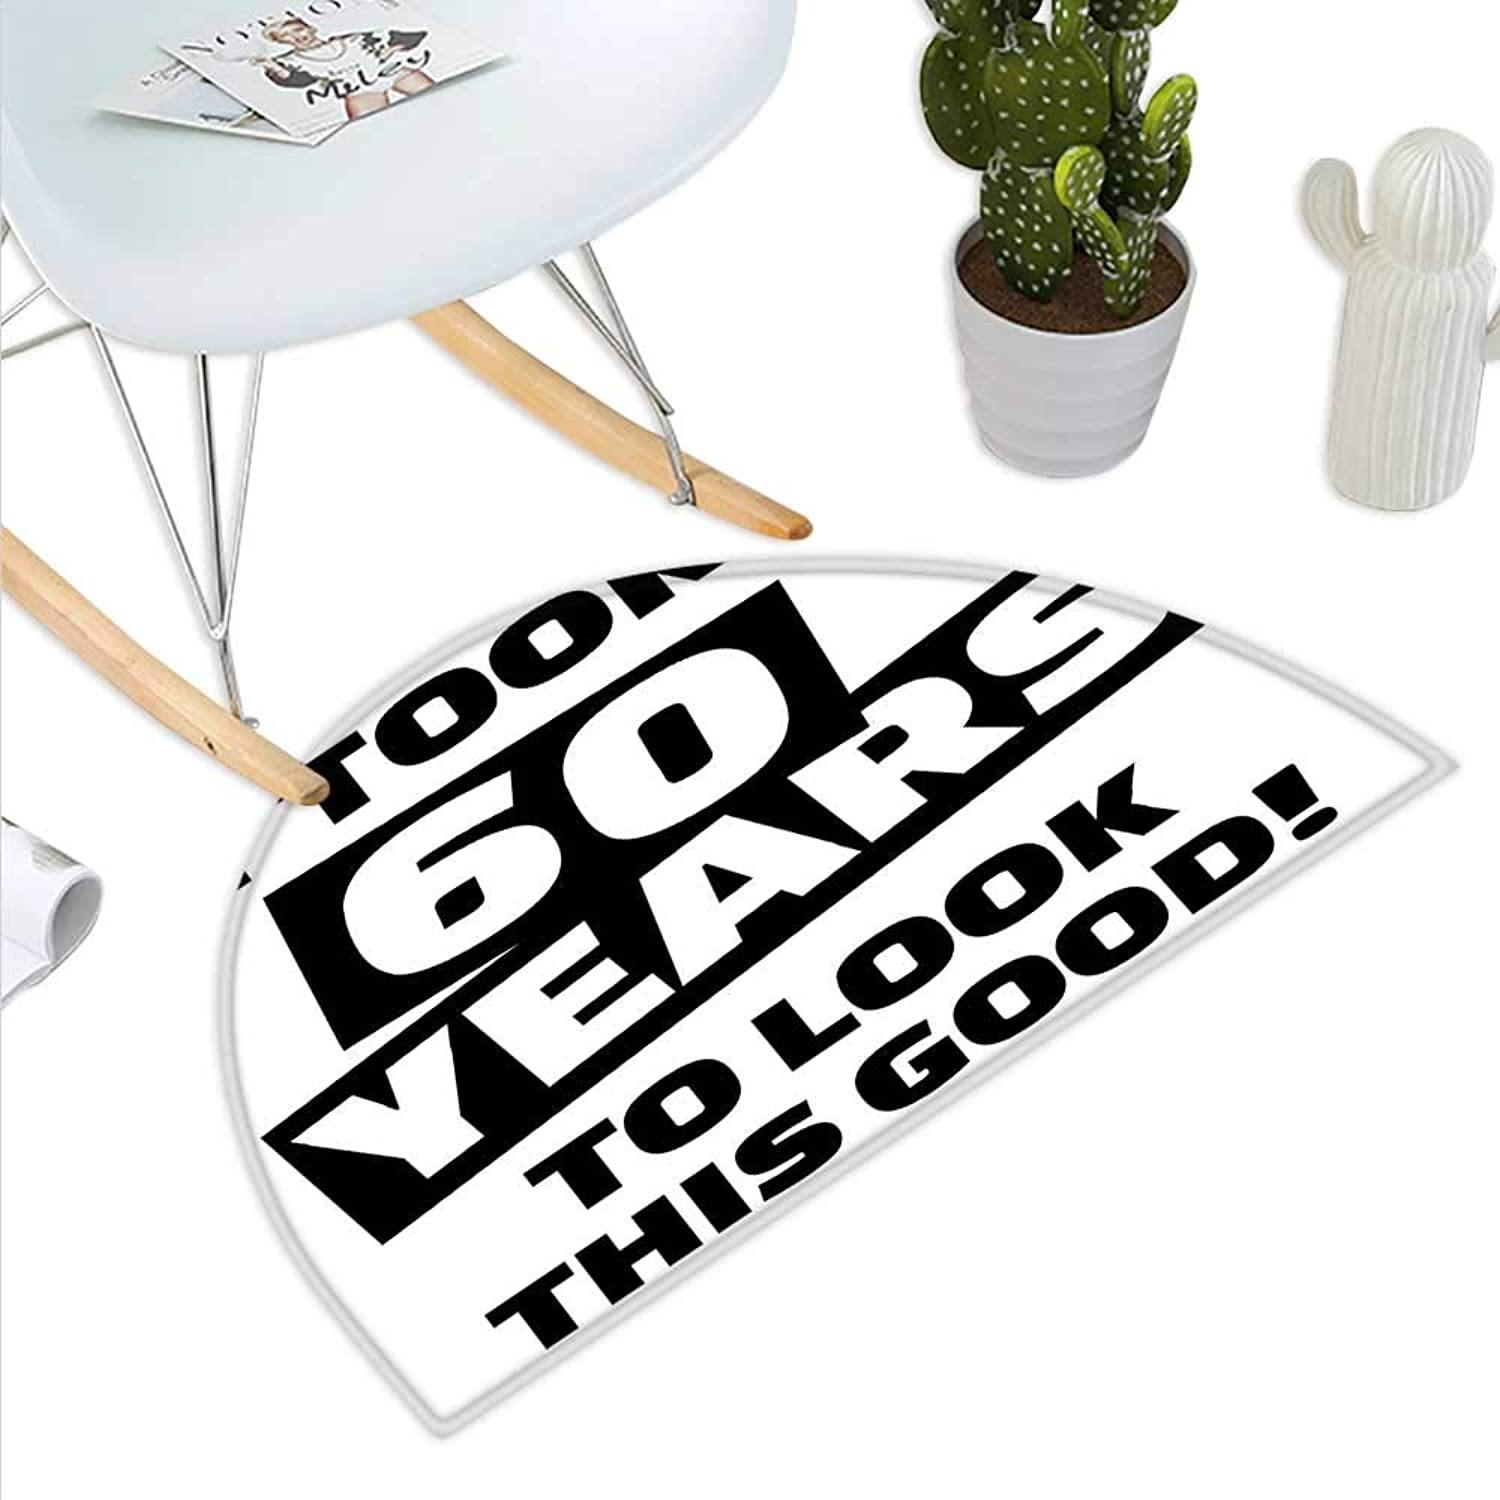 60th Birthday Semicircle Doormat It Took Me 60 Years Party Quote Slogan Admiration Theme Monochrome Image Halfmoon doormats H 39.3  xD 59  Black and White